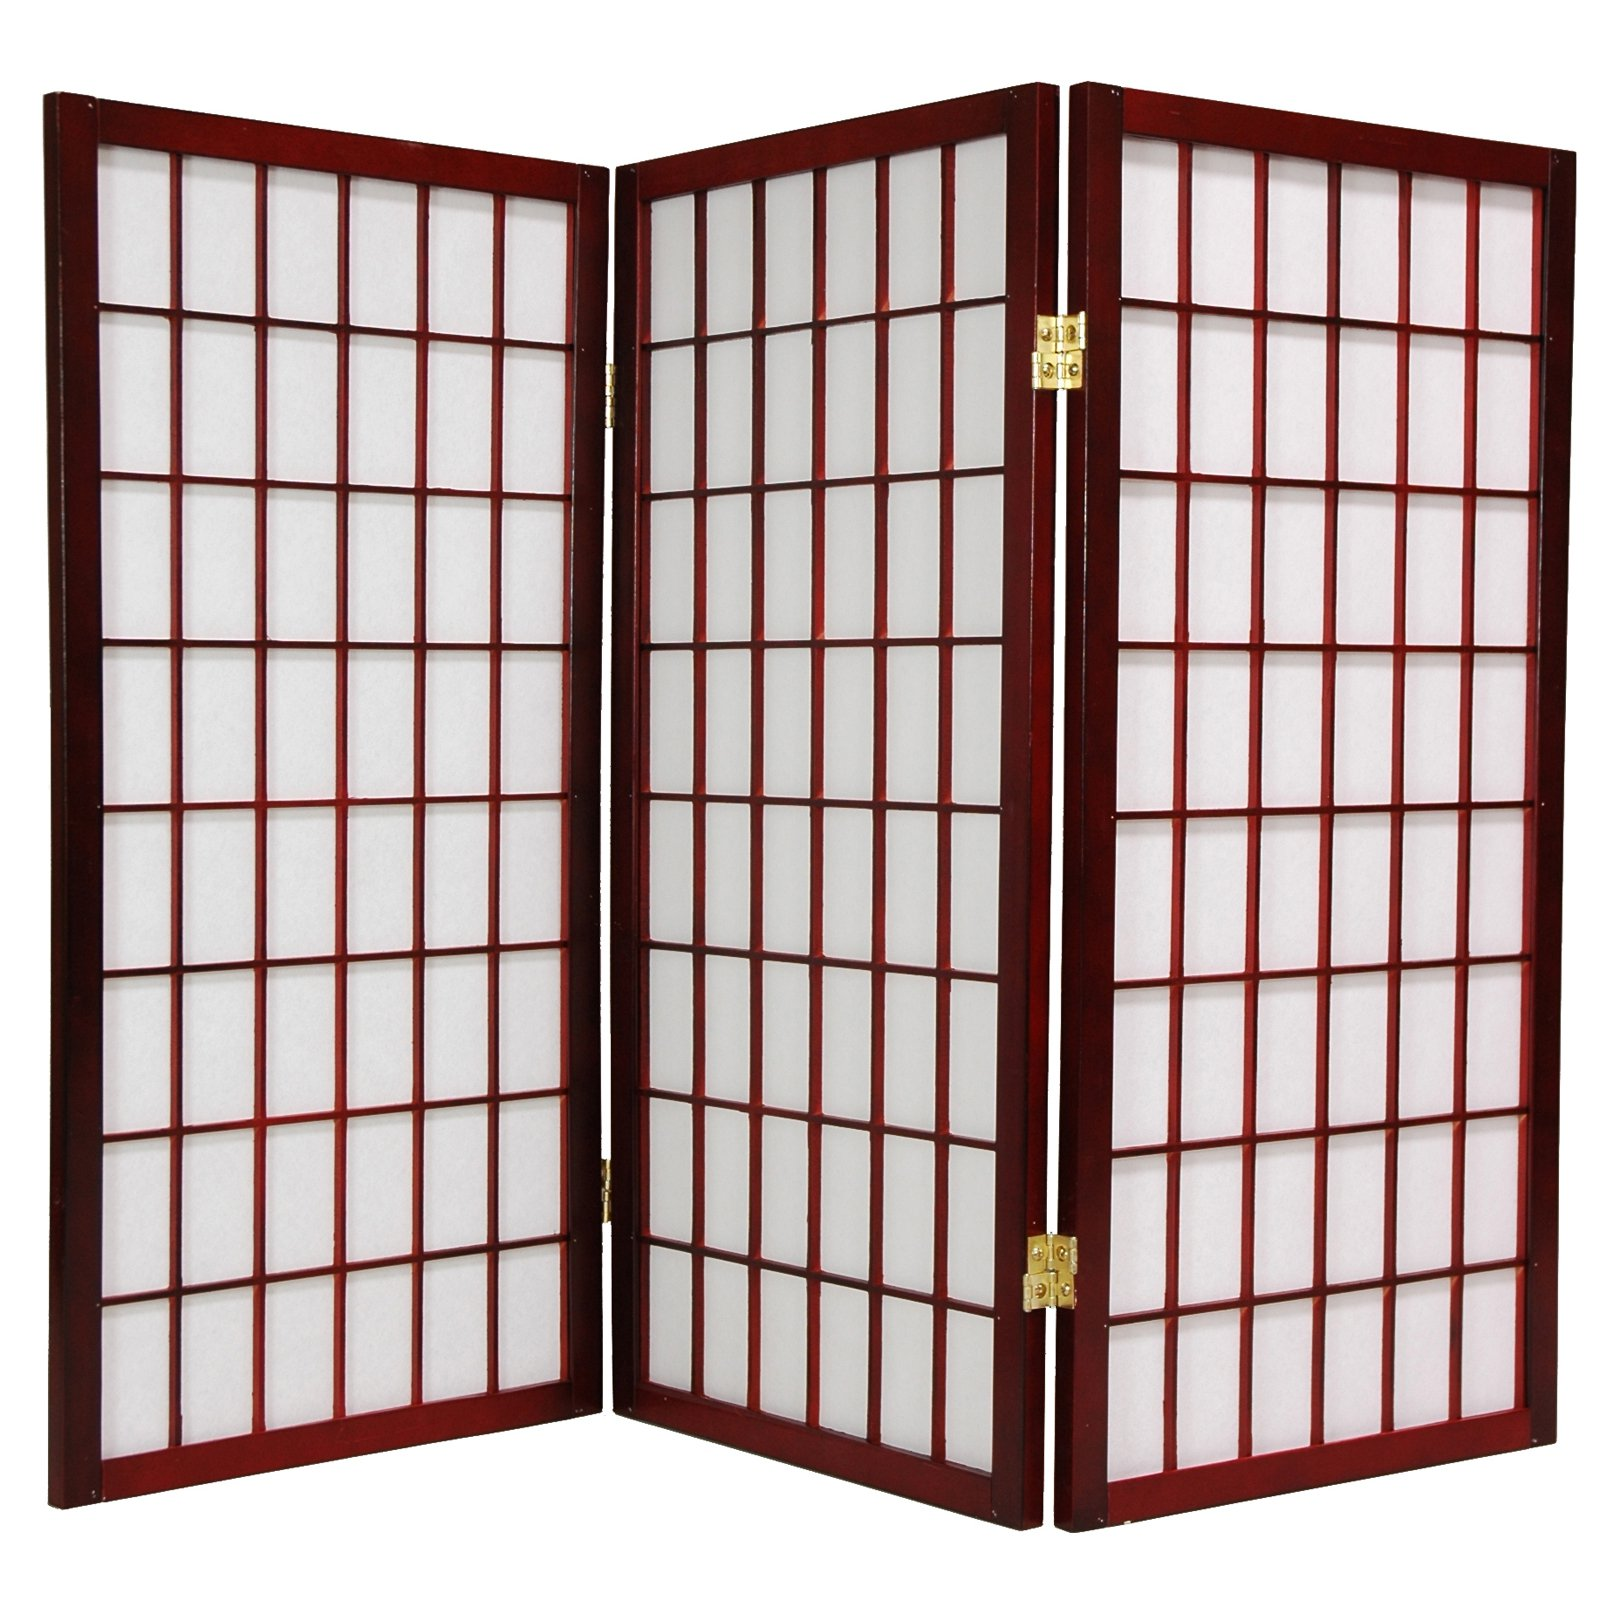 Oriental Furniture Window Pane 36 Inch Tall Shoji Room Divider Walmart Com